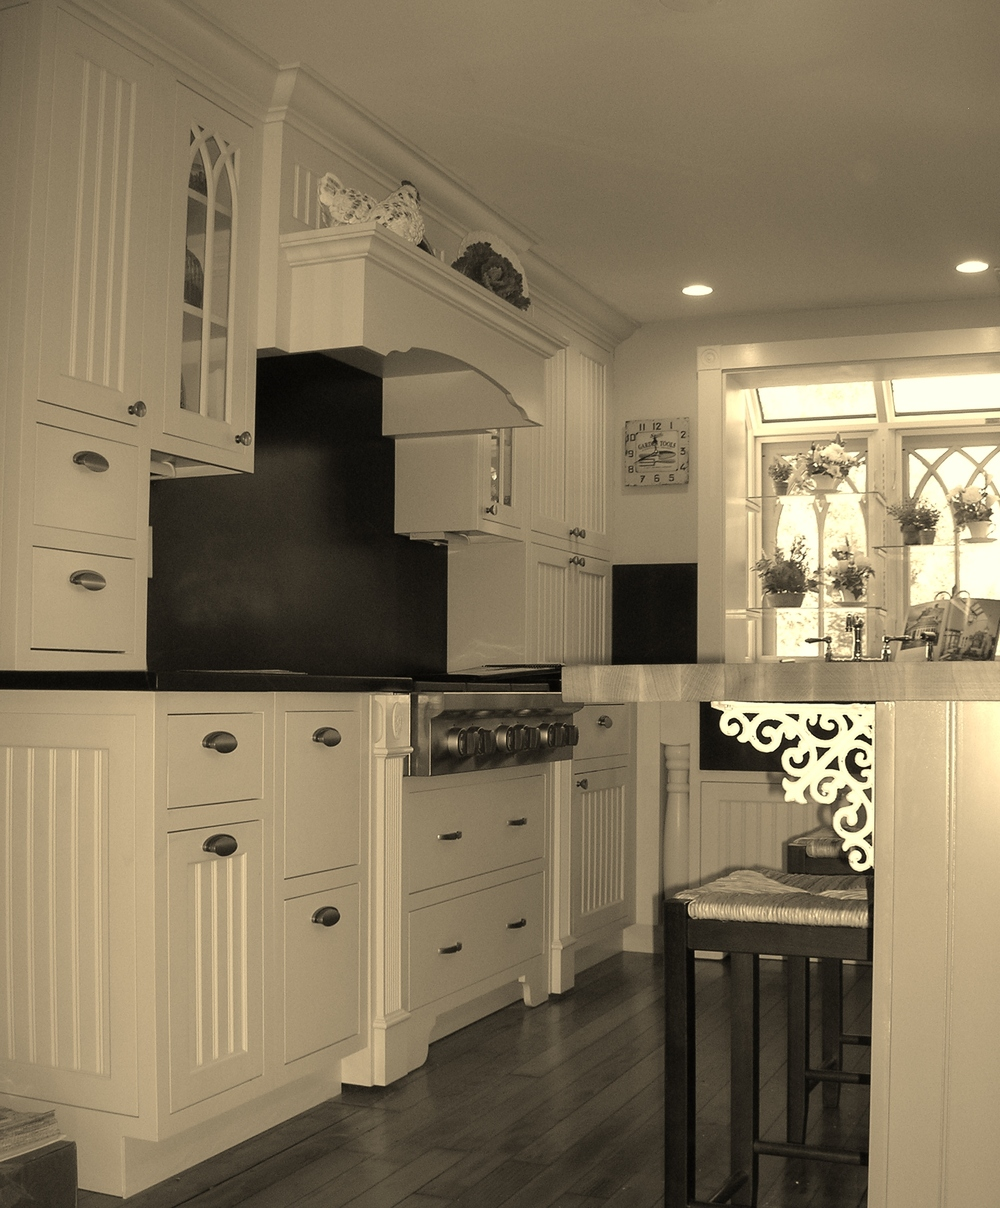 Towle House kitchen2.JPG